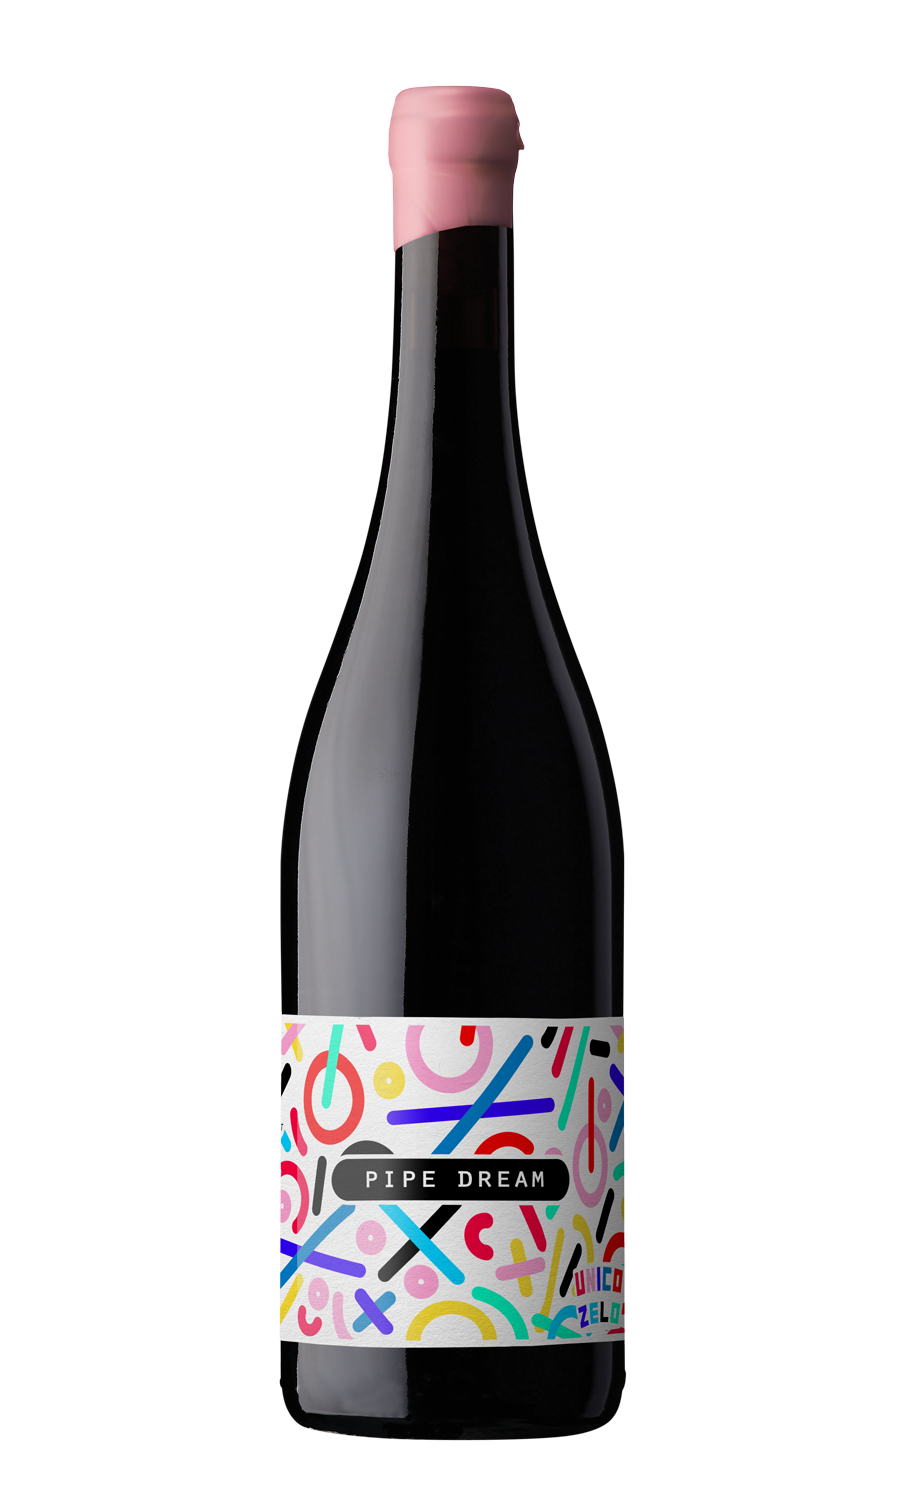 Unico-Zelo-Pipe-Dream-Wine-Label-Design